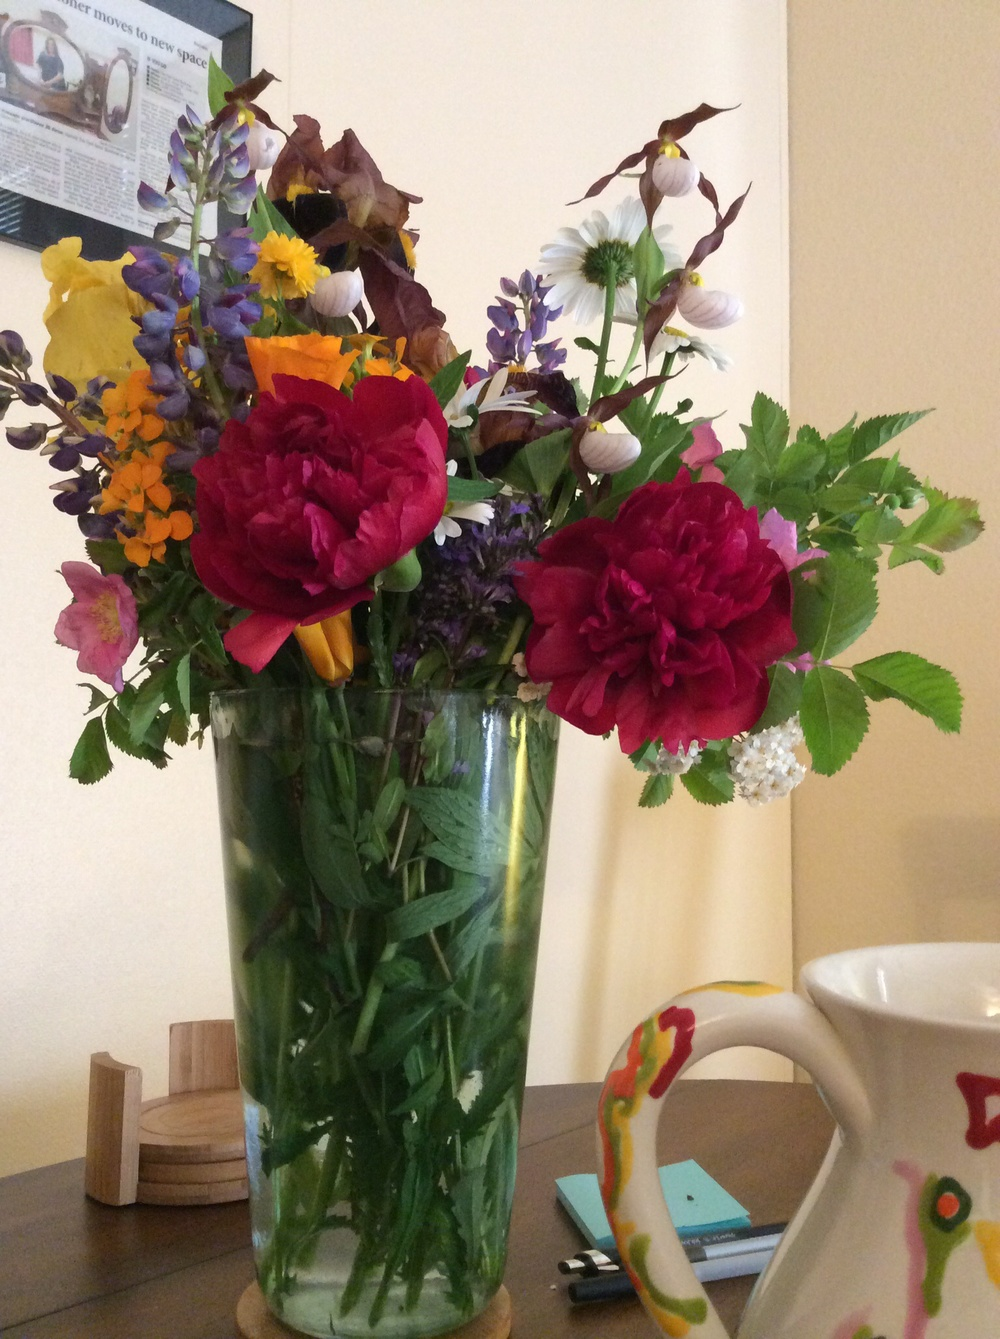 Hand-picked bouquet at The Feel Good Business office.  4 June 2014.  Peonies, Lupine, Mountain Lady's Slipper, Iris, and more.  Thank you!